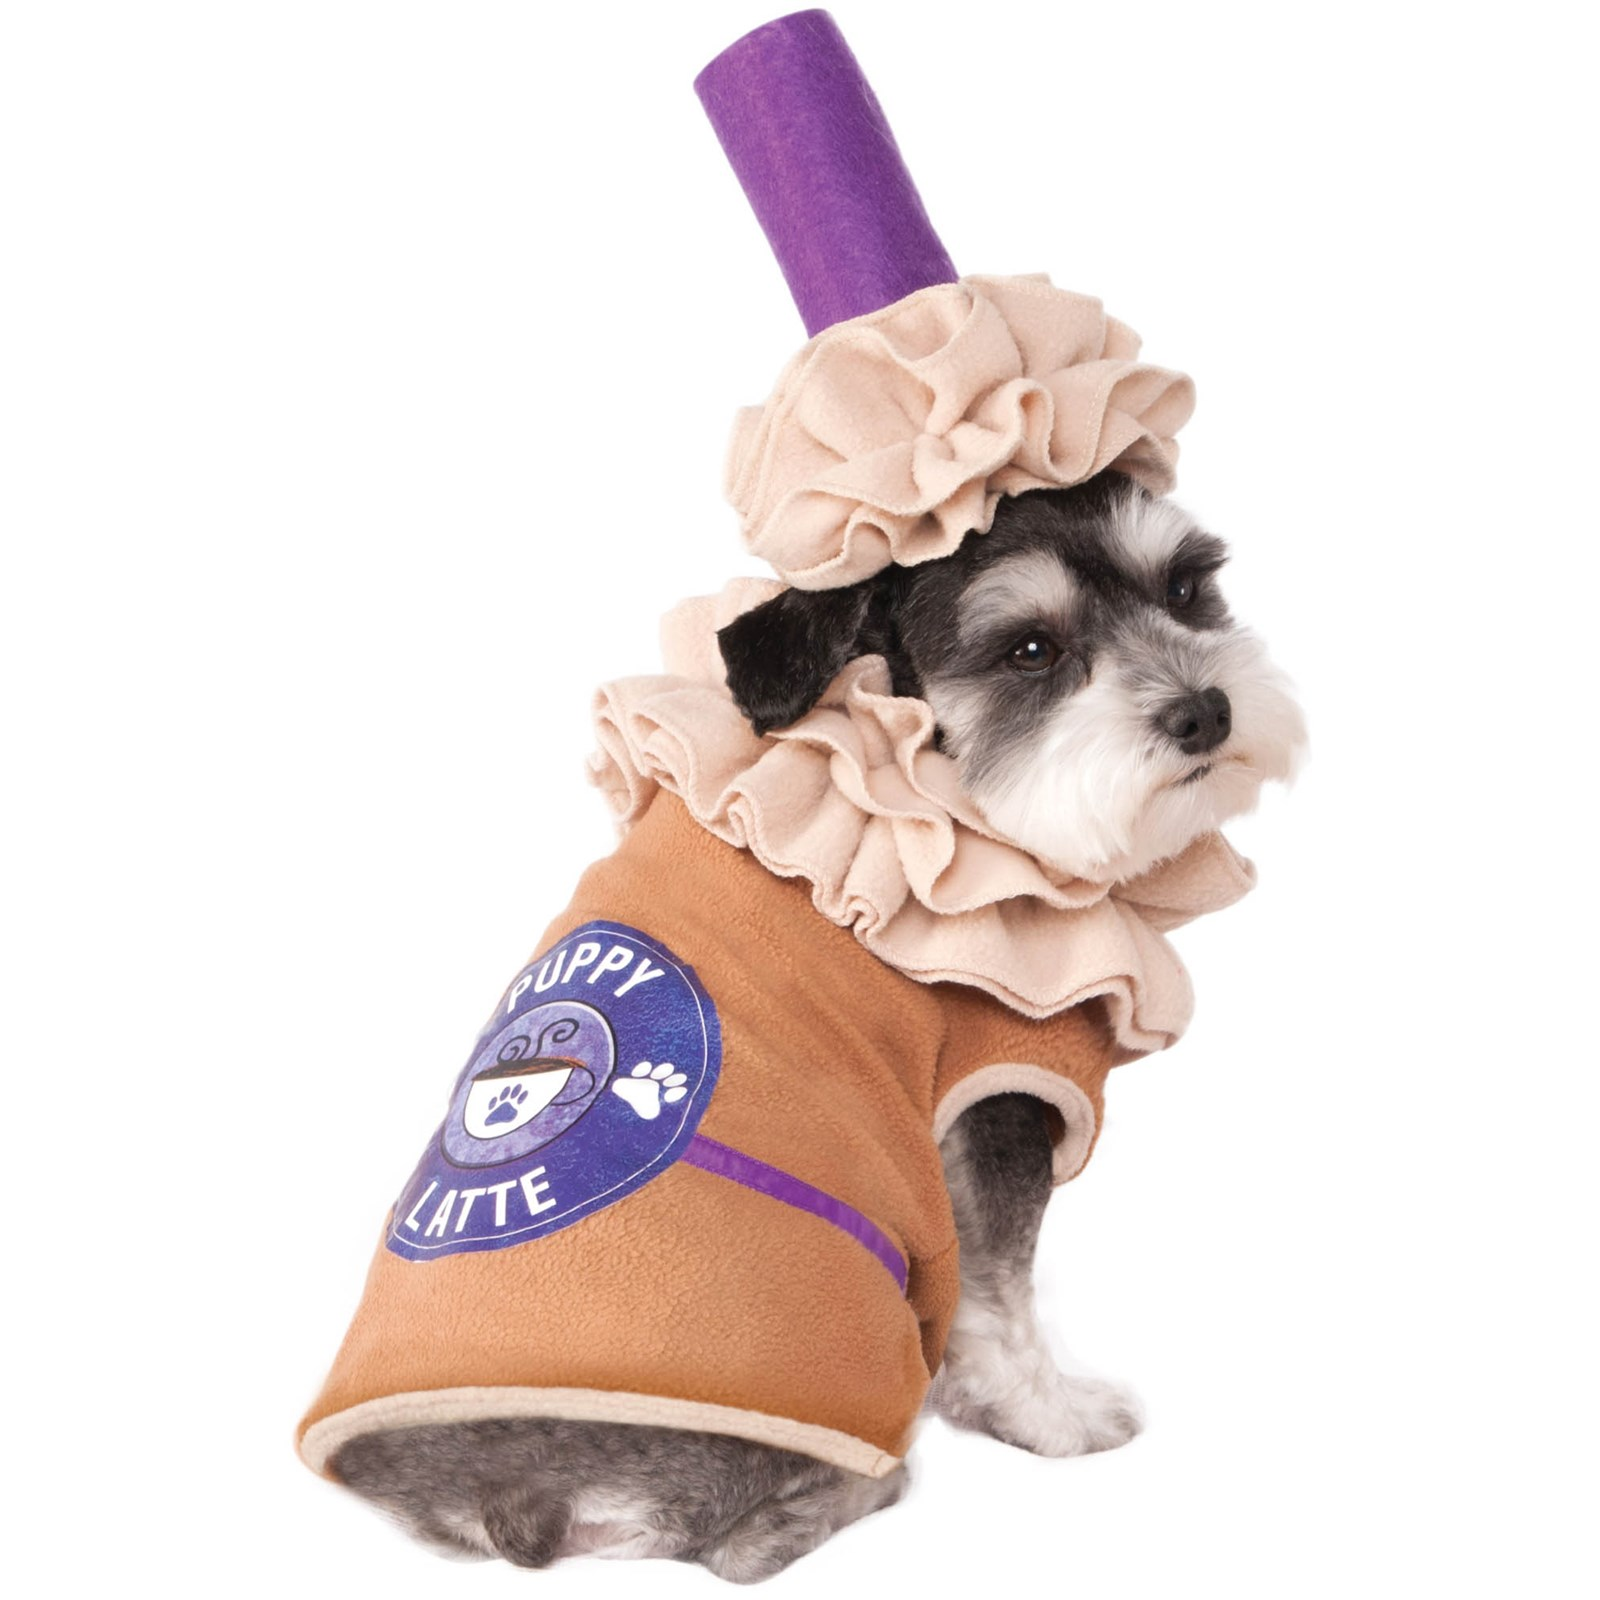 Attractive Puppy Latte Pet Halloween Costume